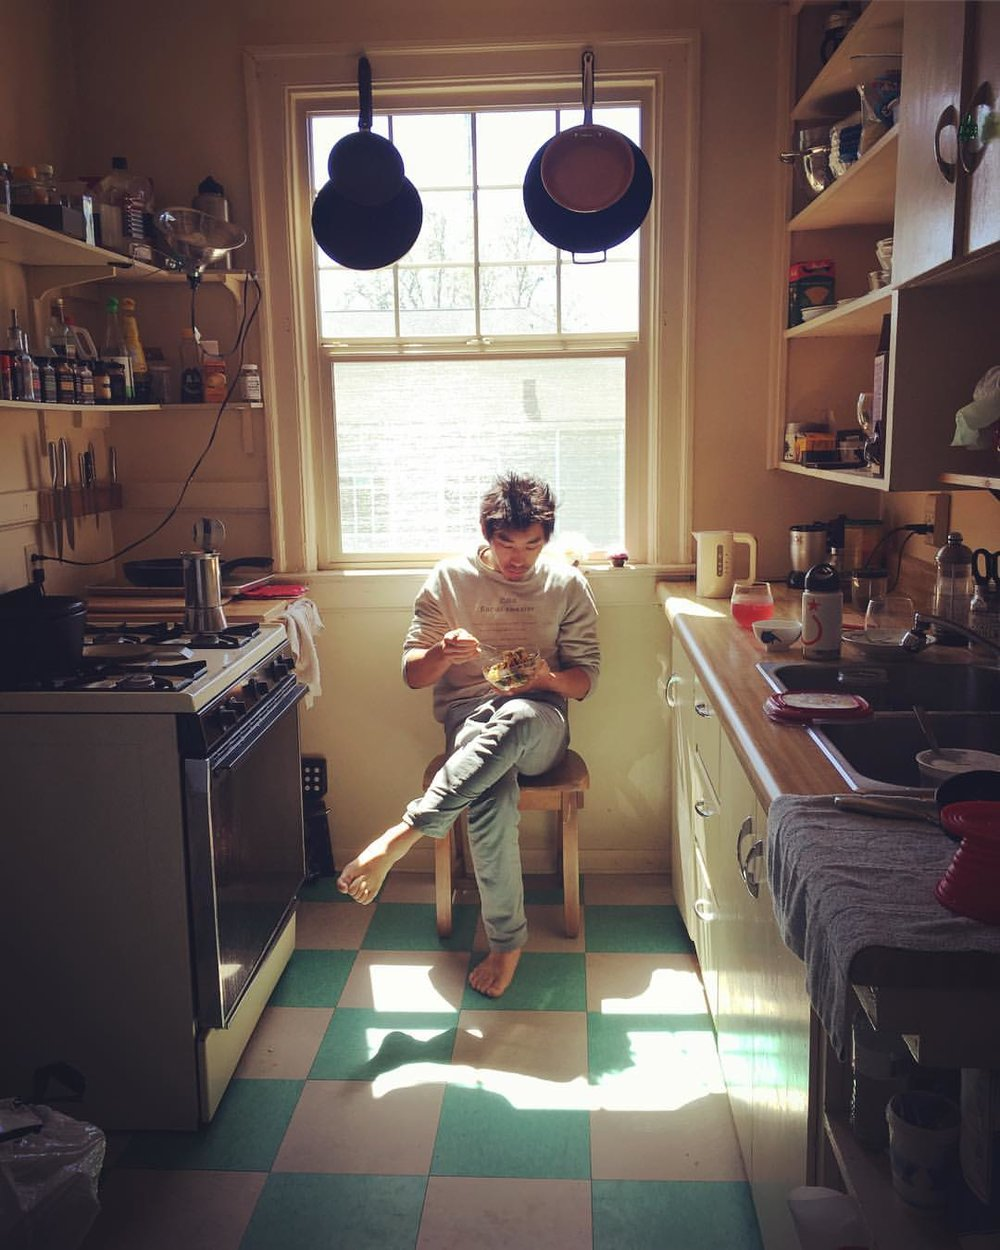 The sunny little kitchen is everyone's favorite spot in the Kim apartment